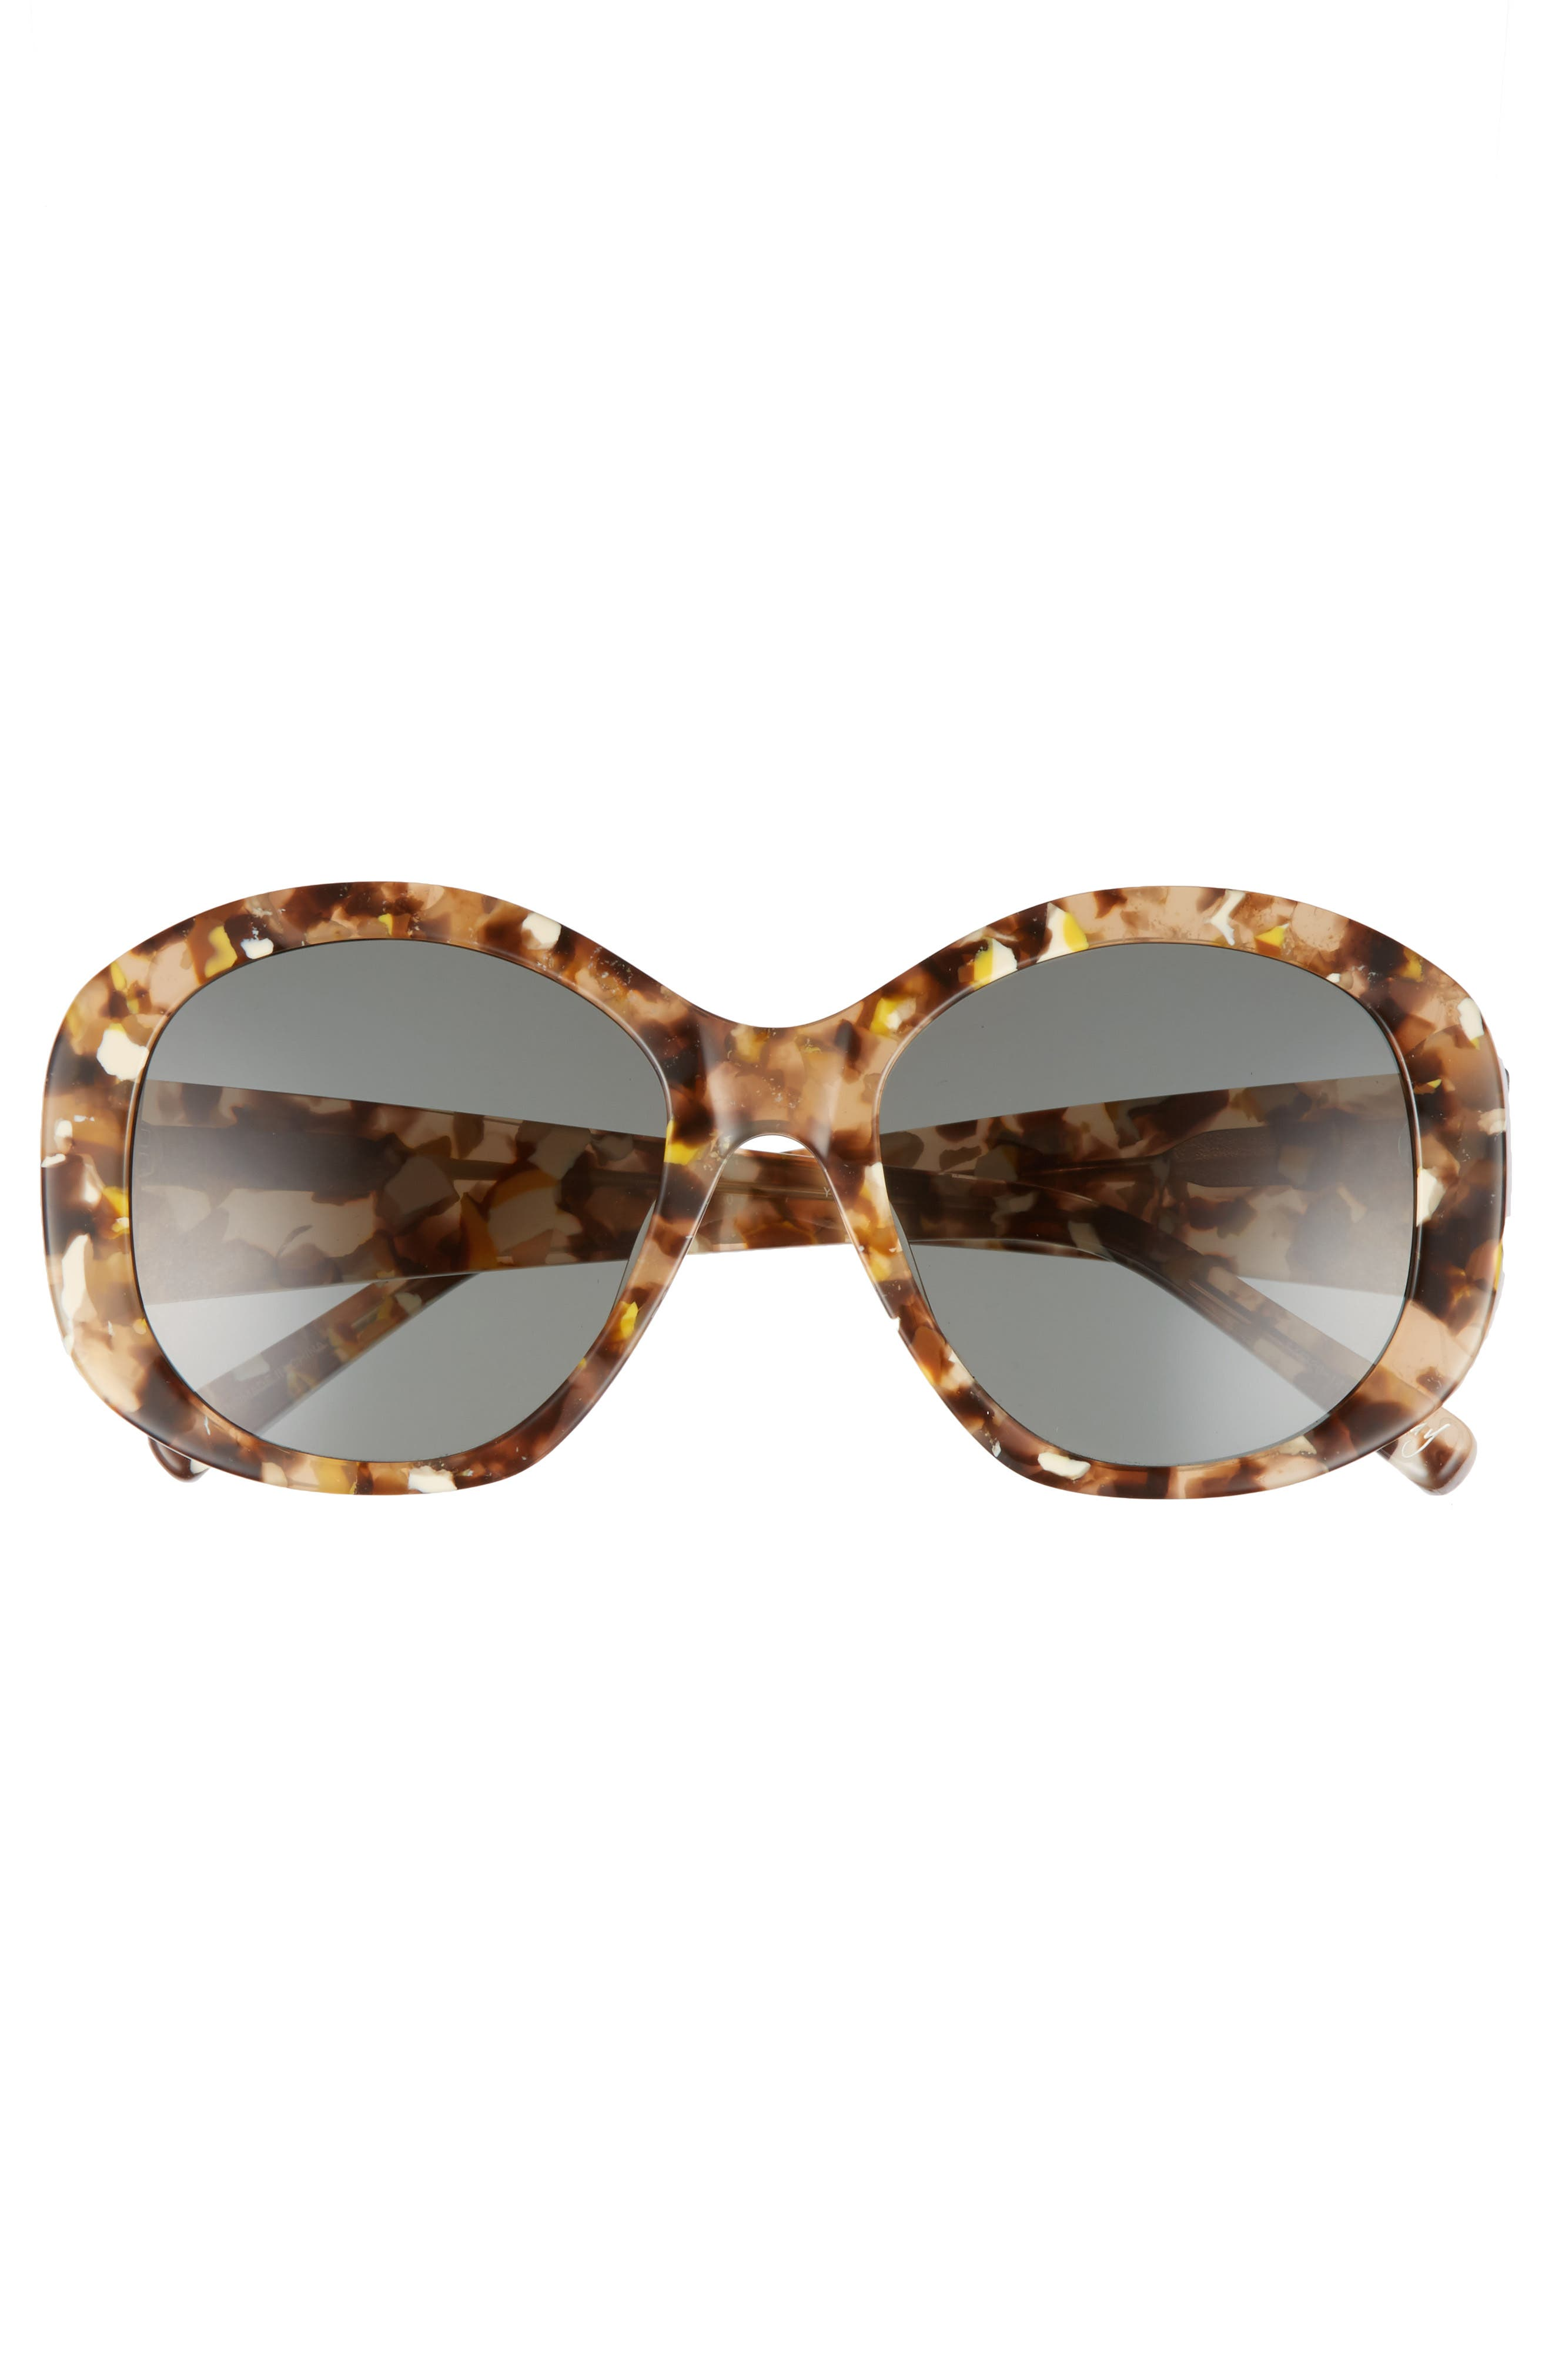 Kay 54mm Round Sunglasses,                             Alternate thumbnail 3, color,                             Amber/ Green